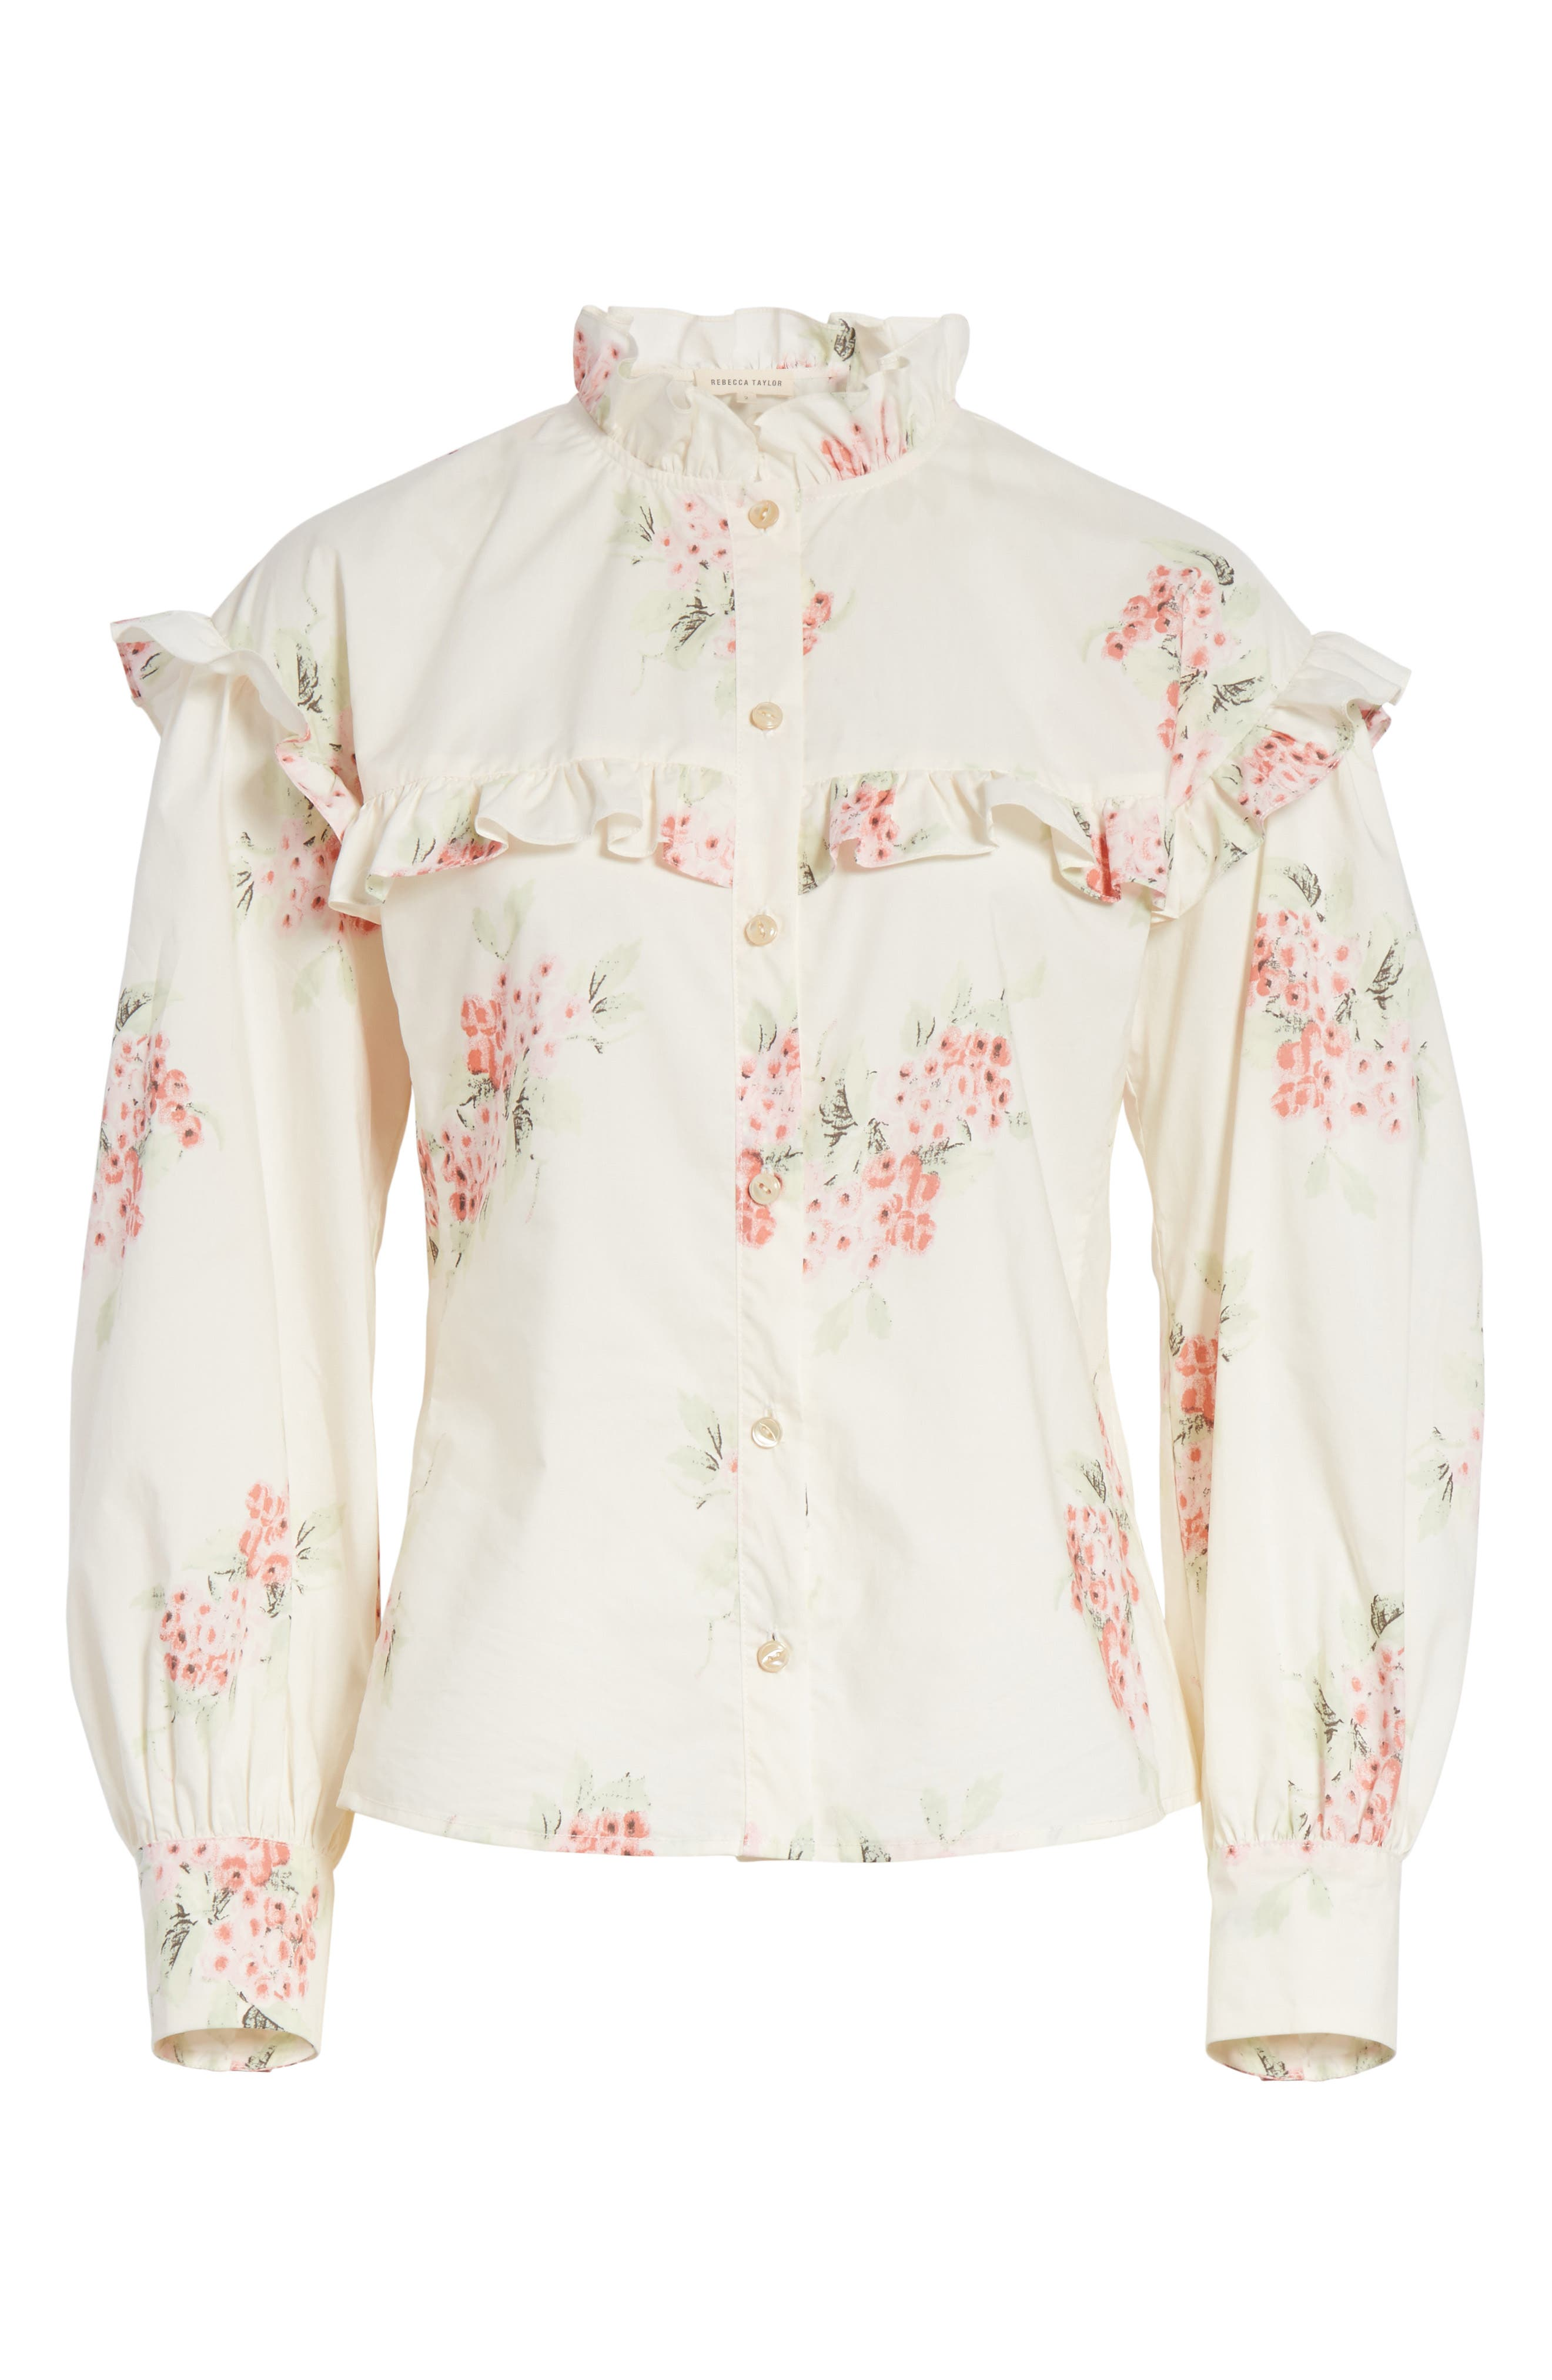 Maia Ruffled Floral Top,                             Alternate thumbnail 6, color,                             901